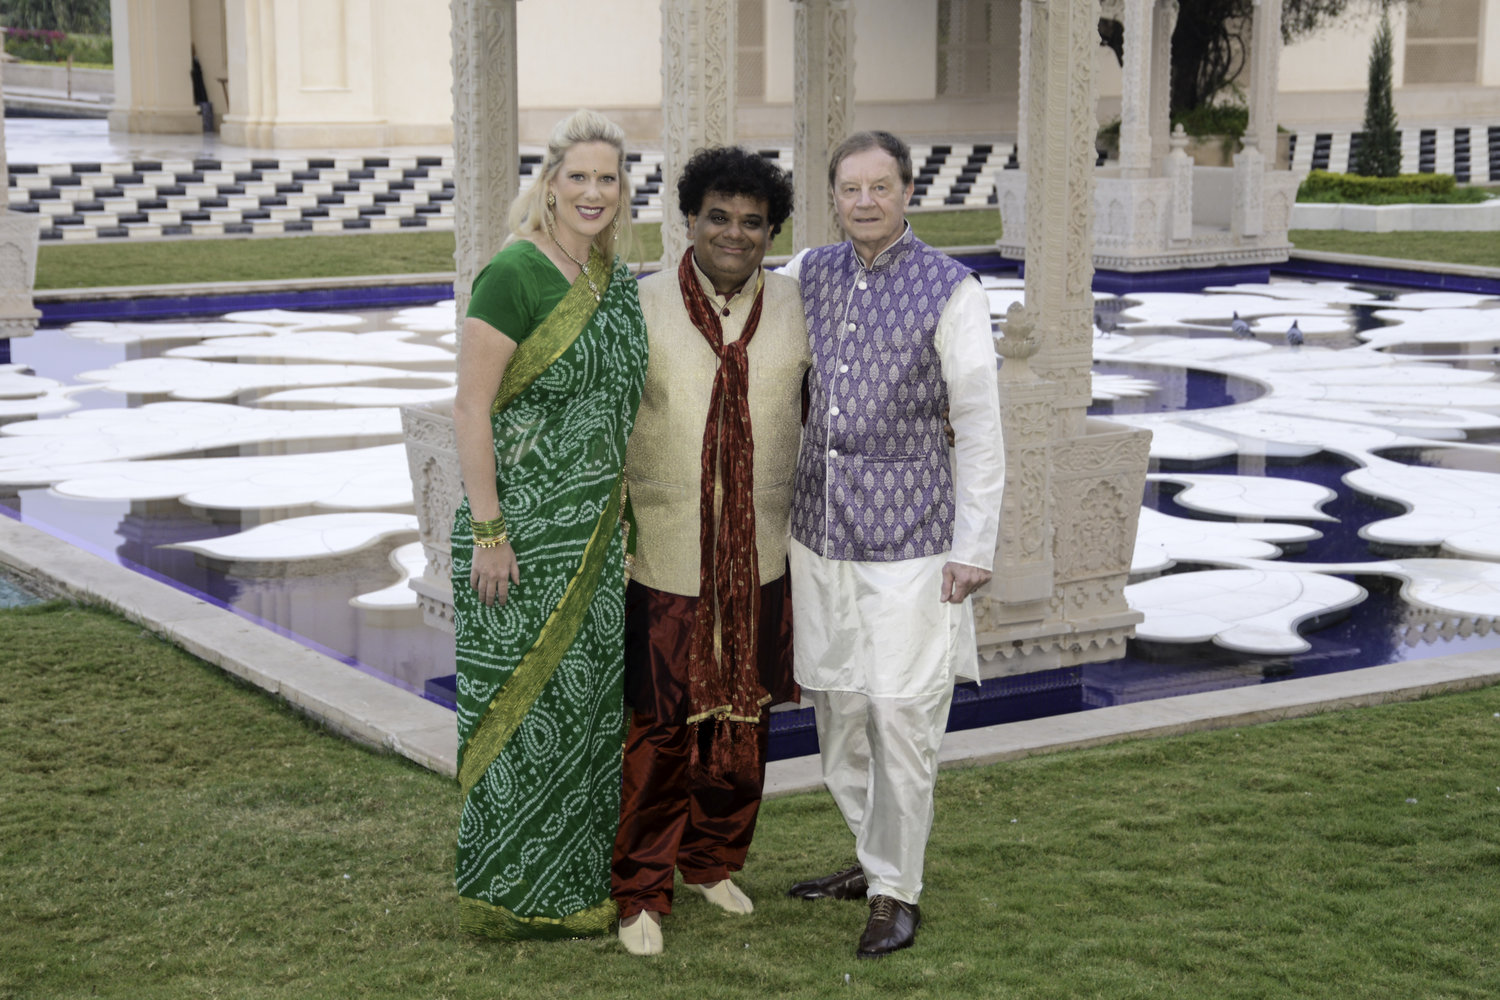 Yatin & LeAnn Patel and Don Bielinski in traditional clothing